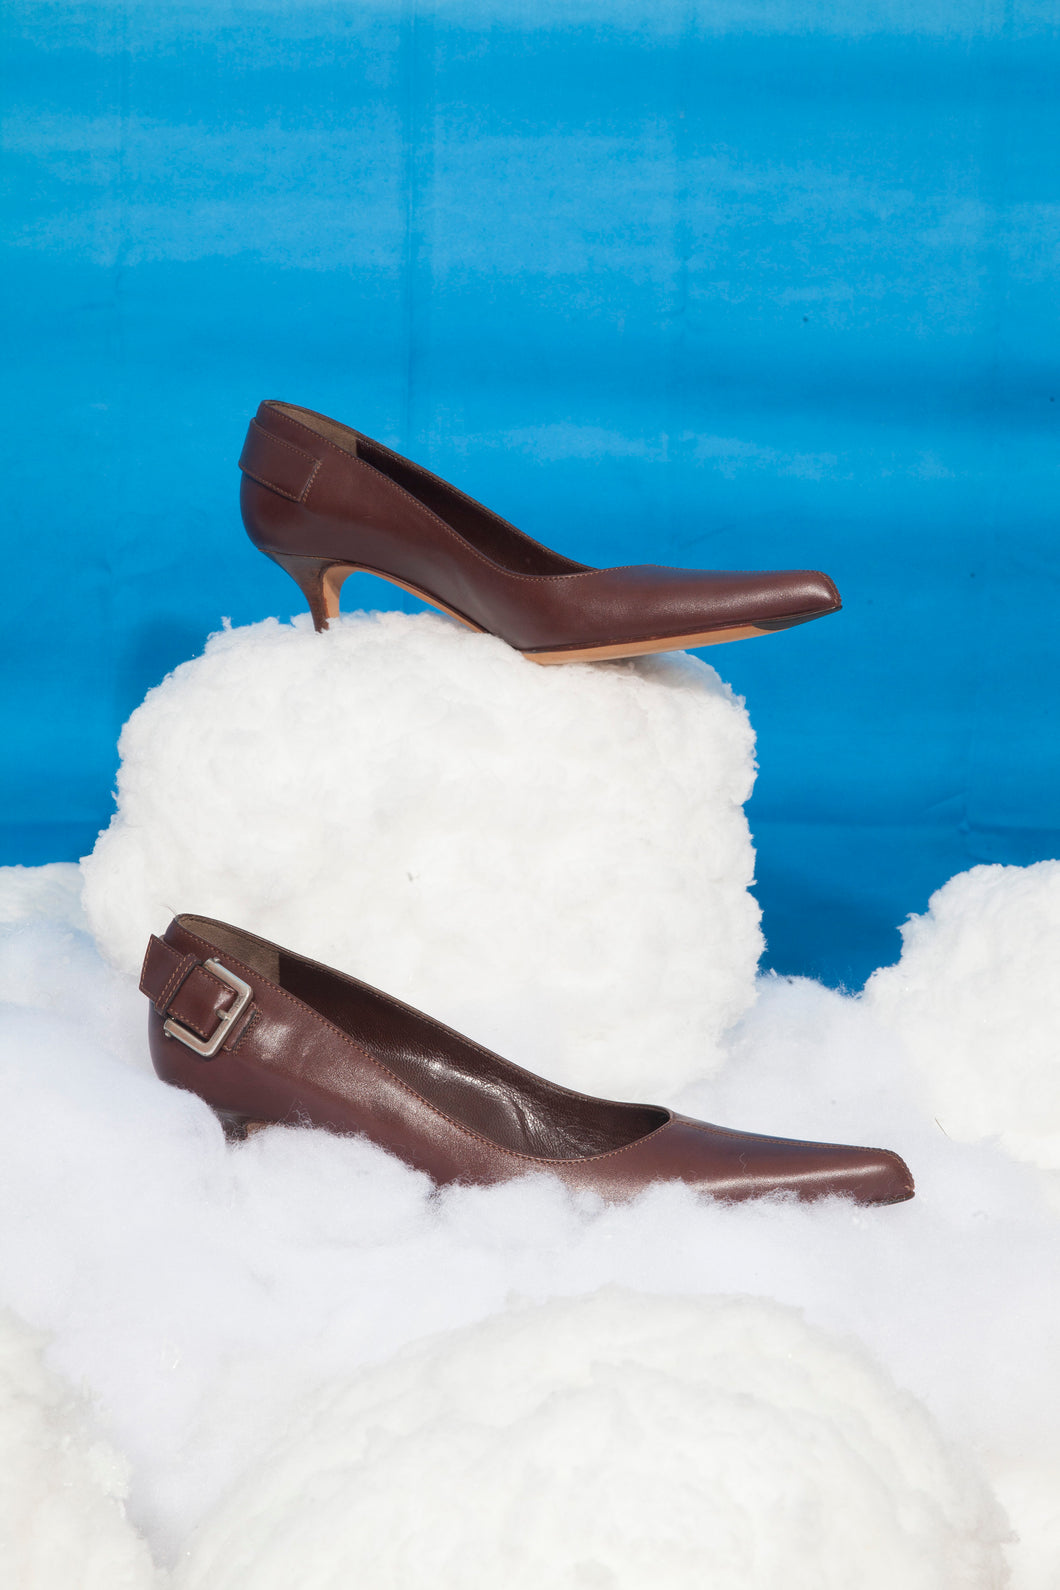 Yves Saint Laurent Y2K leather heels with belt detail in brown